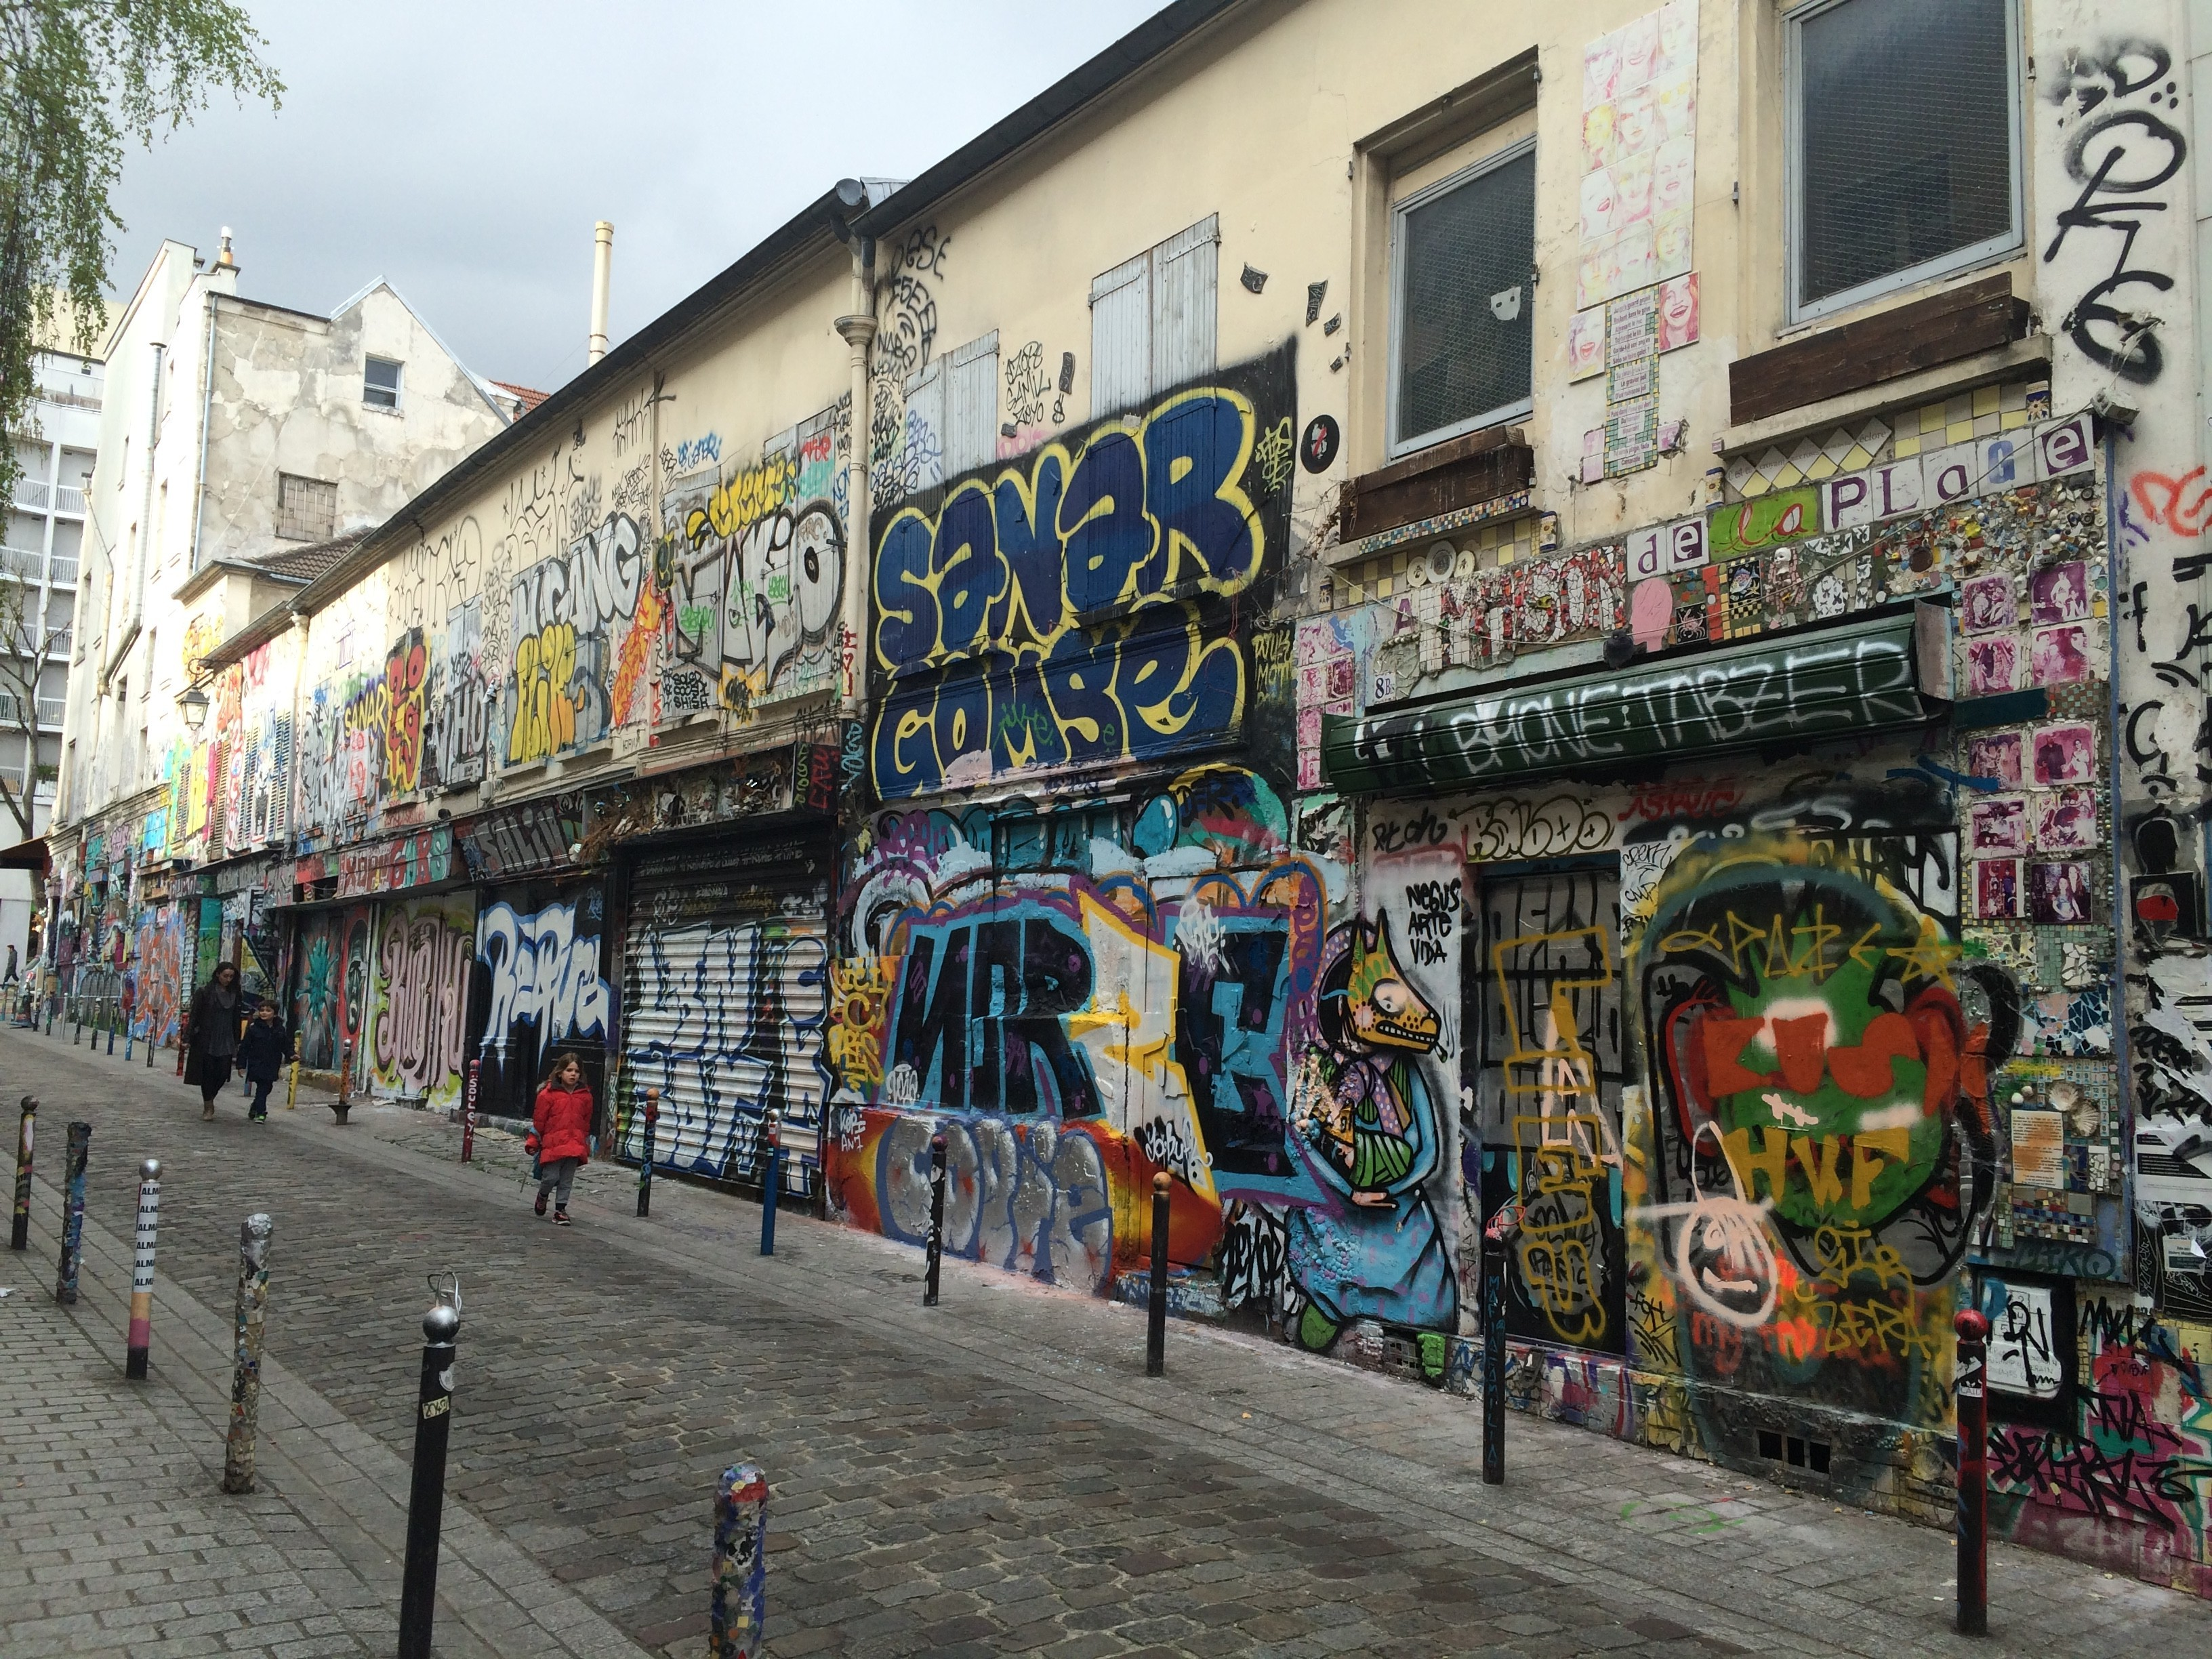 Street Art and Graffiti on Rue des Noyés, Paris